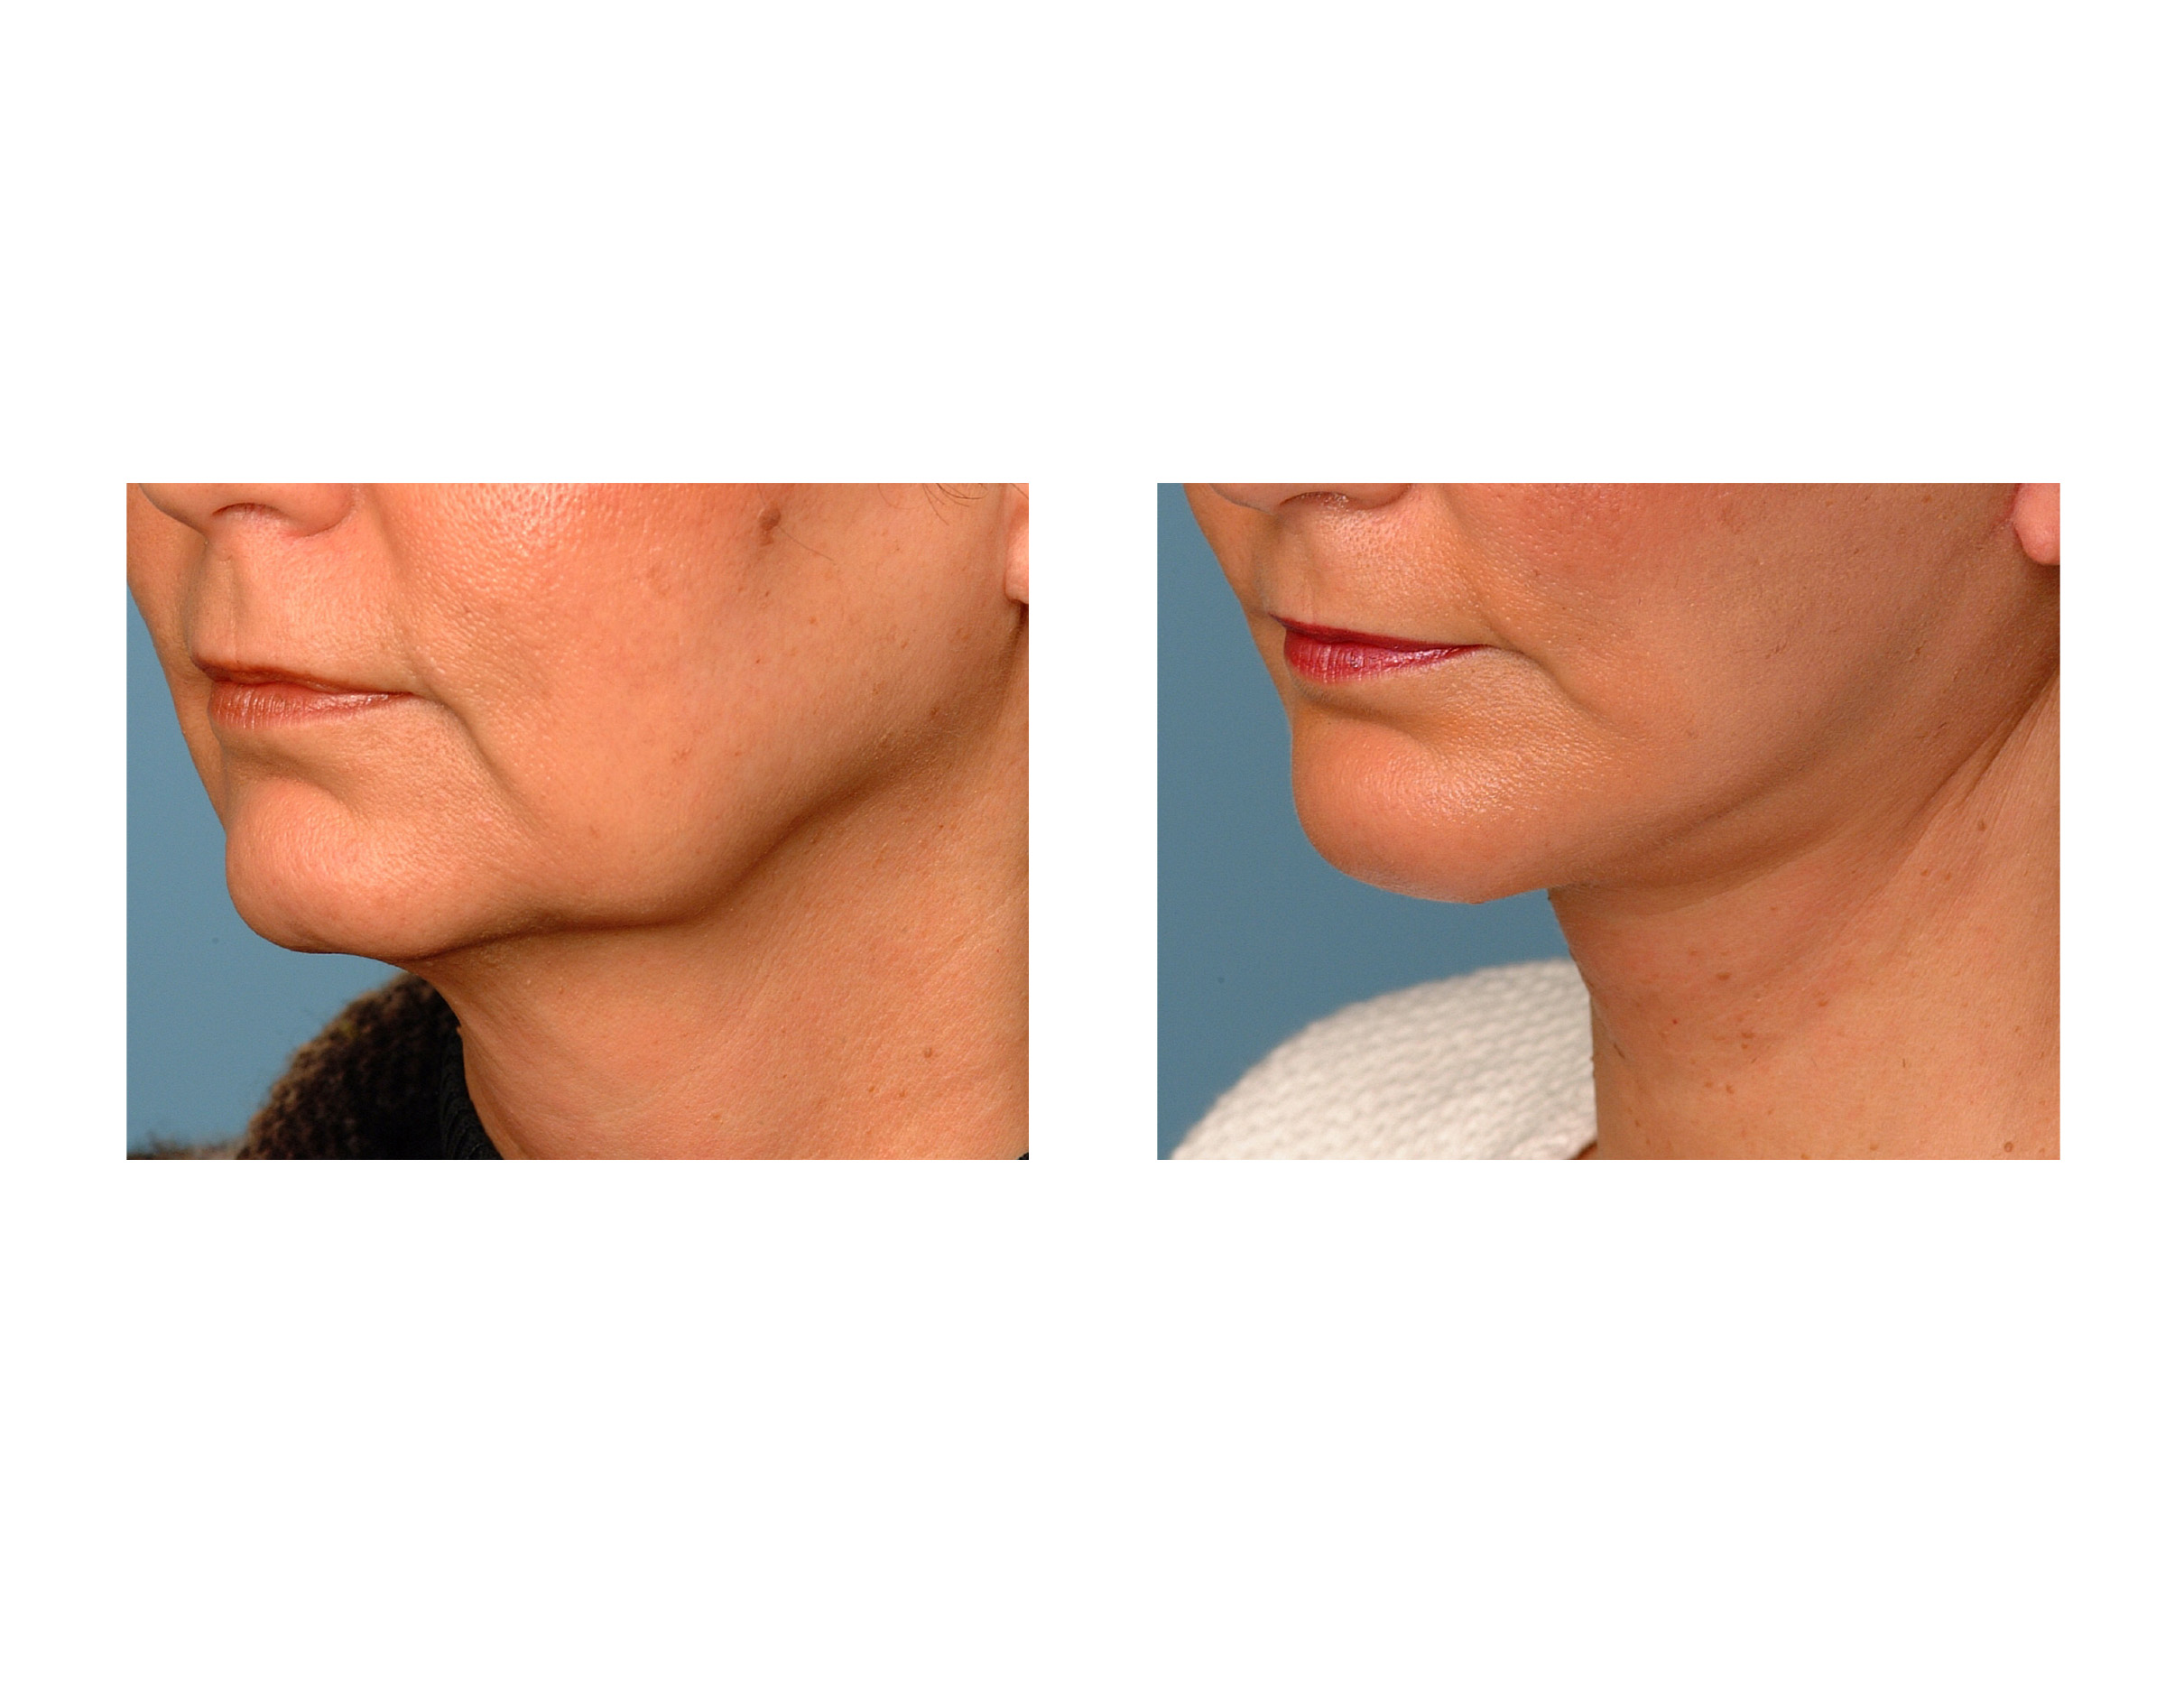 One of the earliest signs of facial aging is the development of jowls or ...